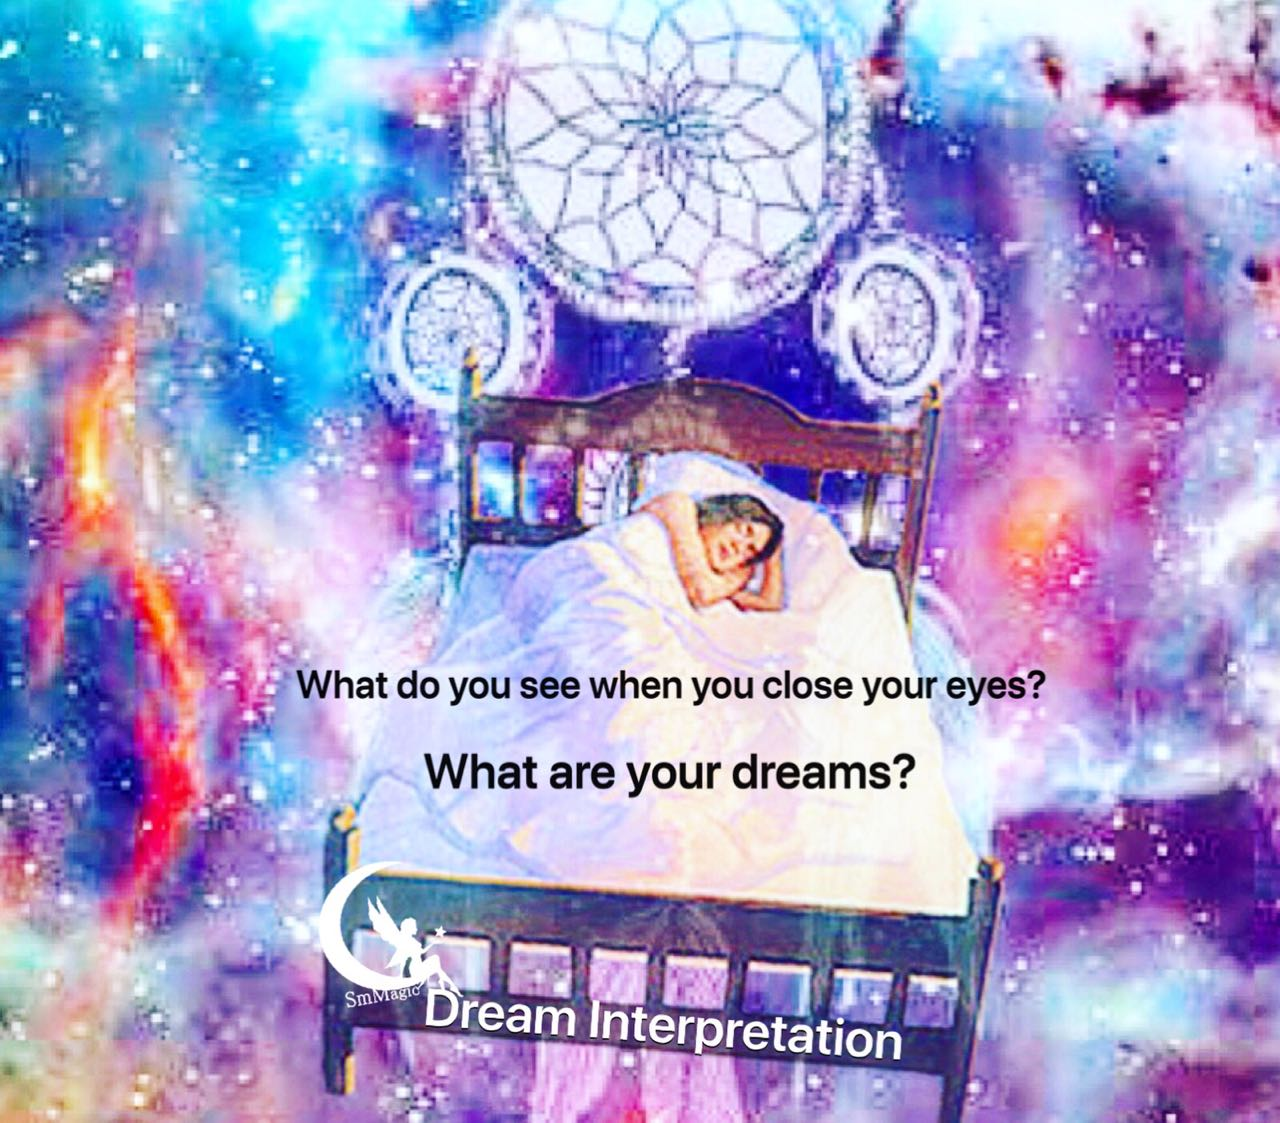 Decode Your Dreams Energy Exchange - Rs. 1100 Click the image to sign up.